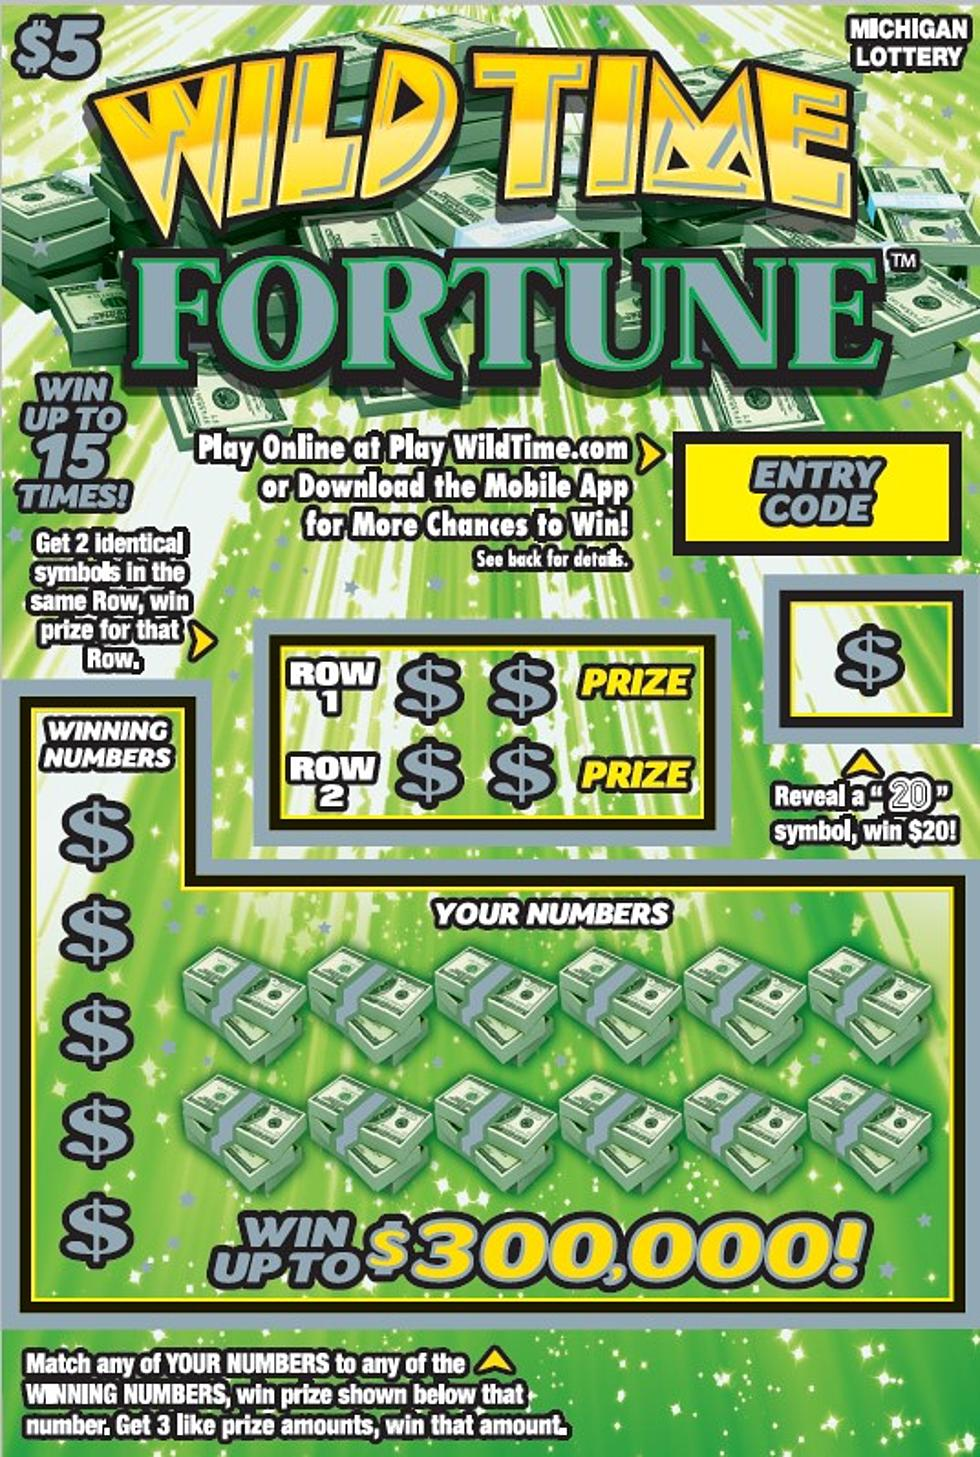 Fantastic Fridays With Connie & Curtis and The Michigan Lottery